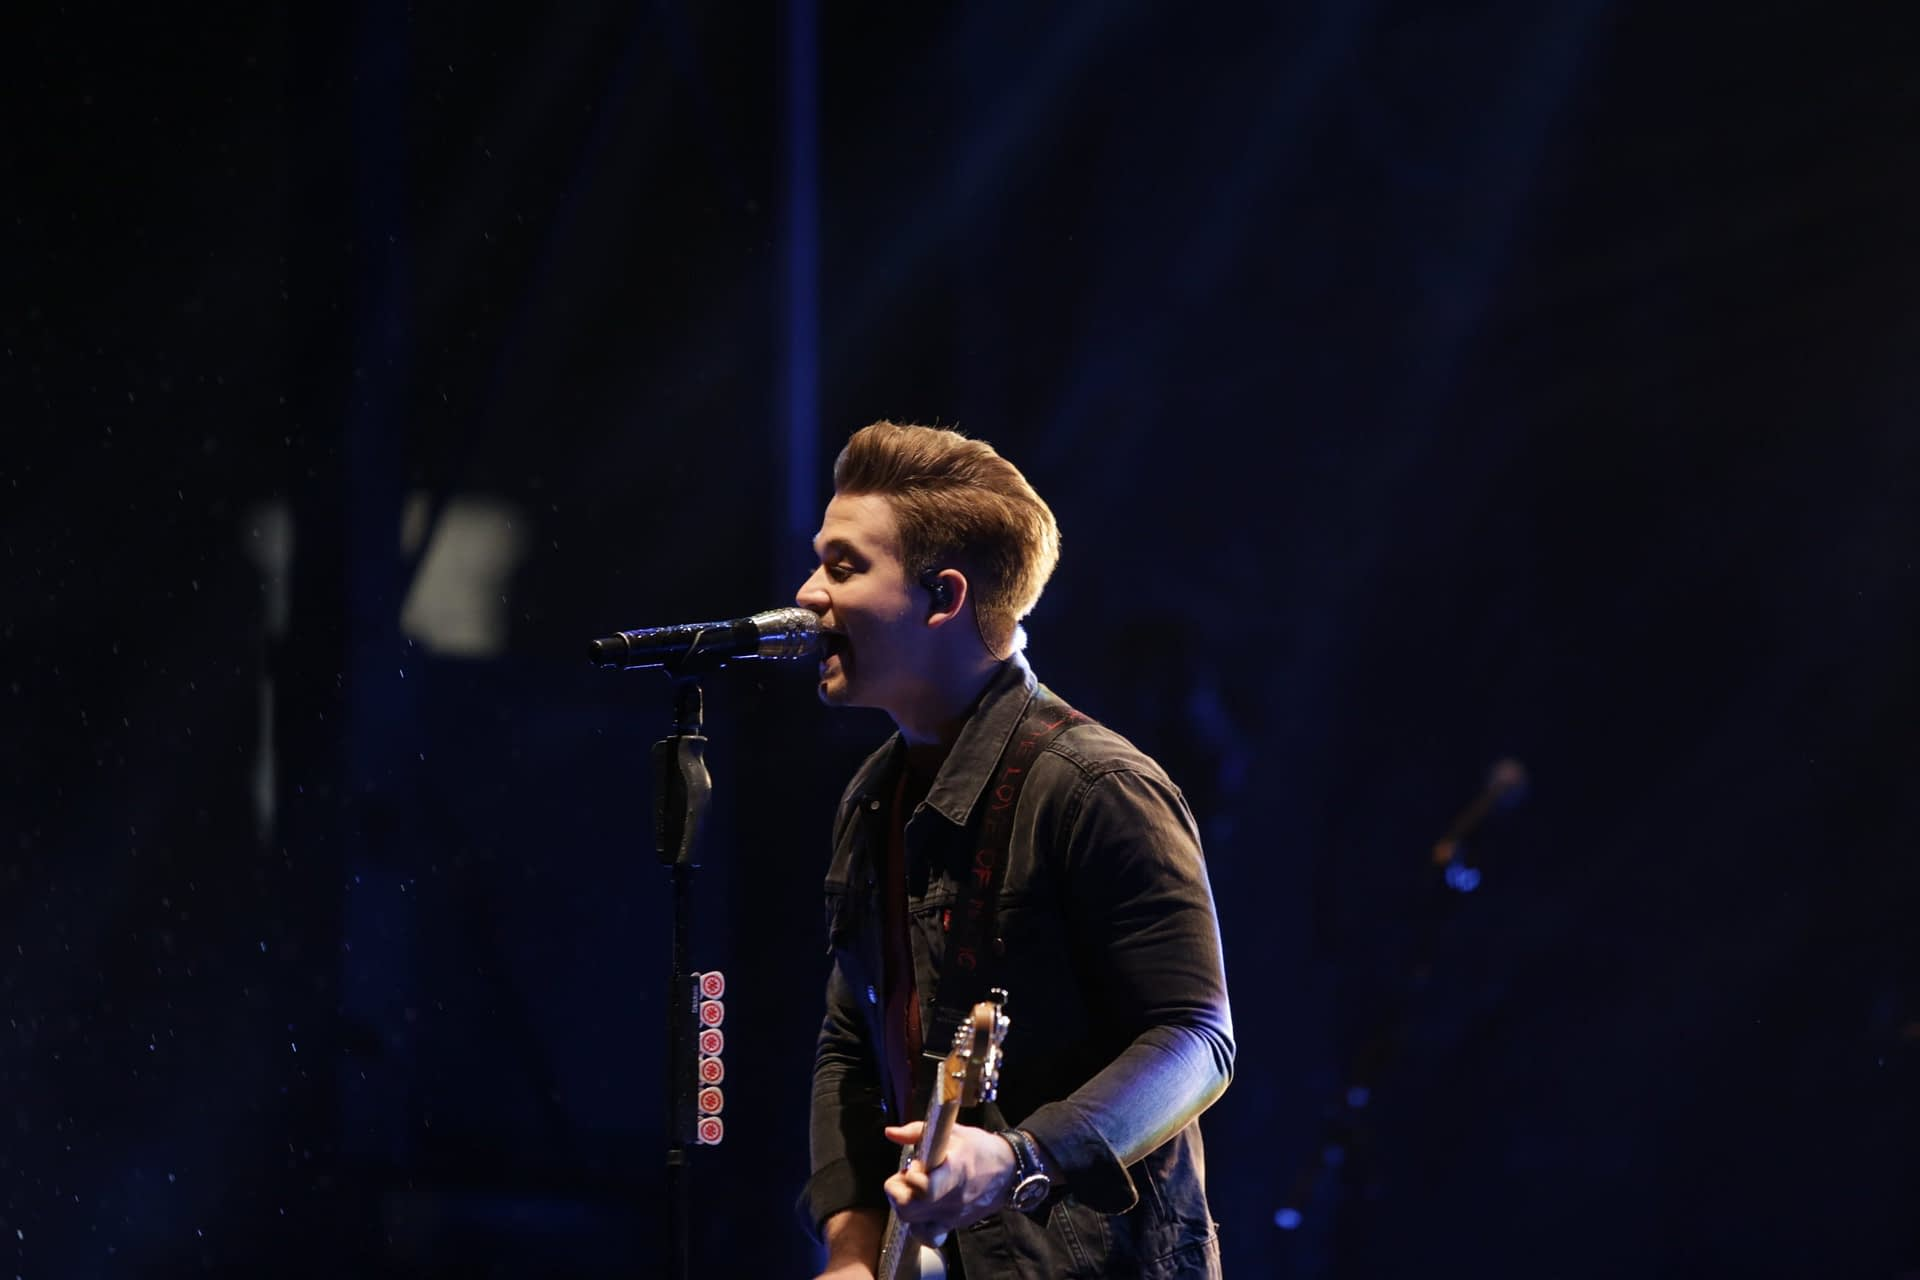 MJS Live Photographer Photographs Hunter Hayes at High Point University